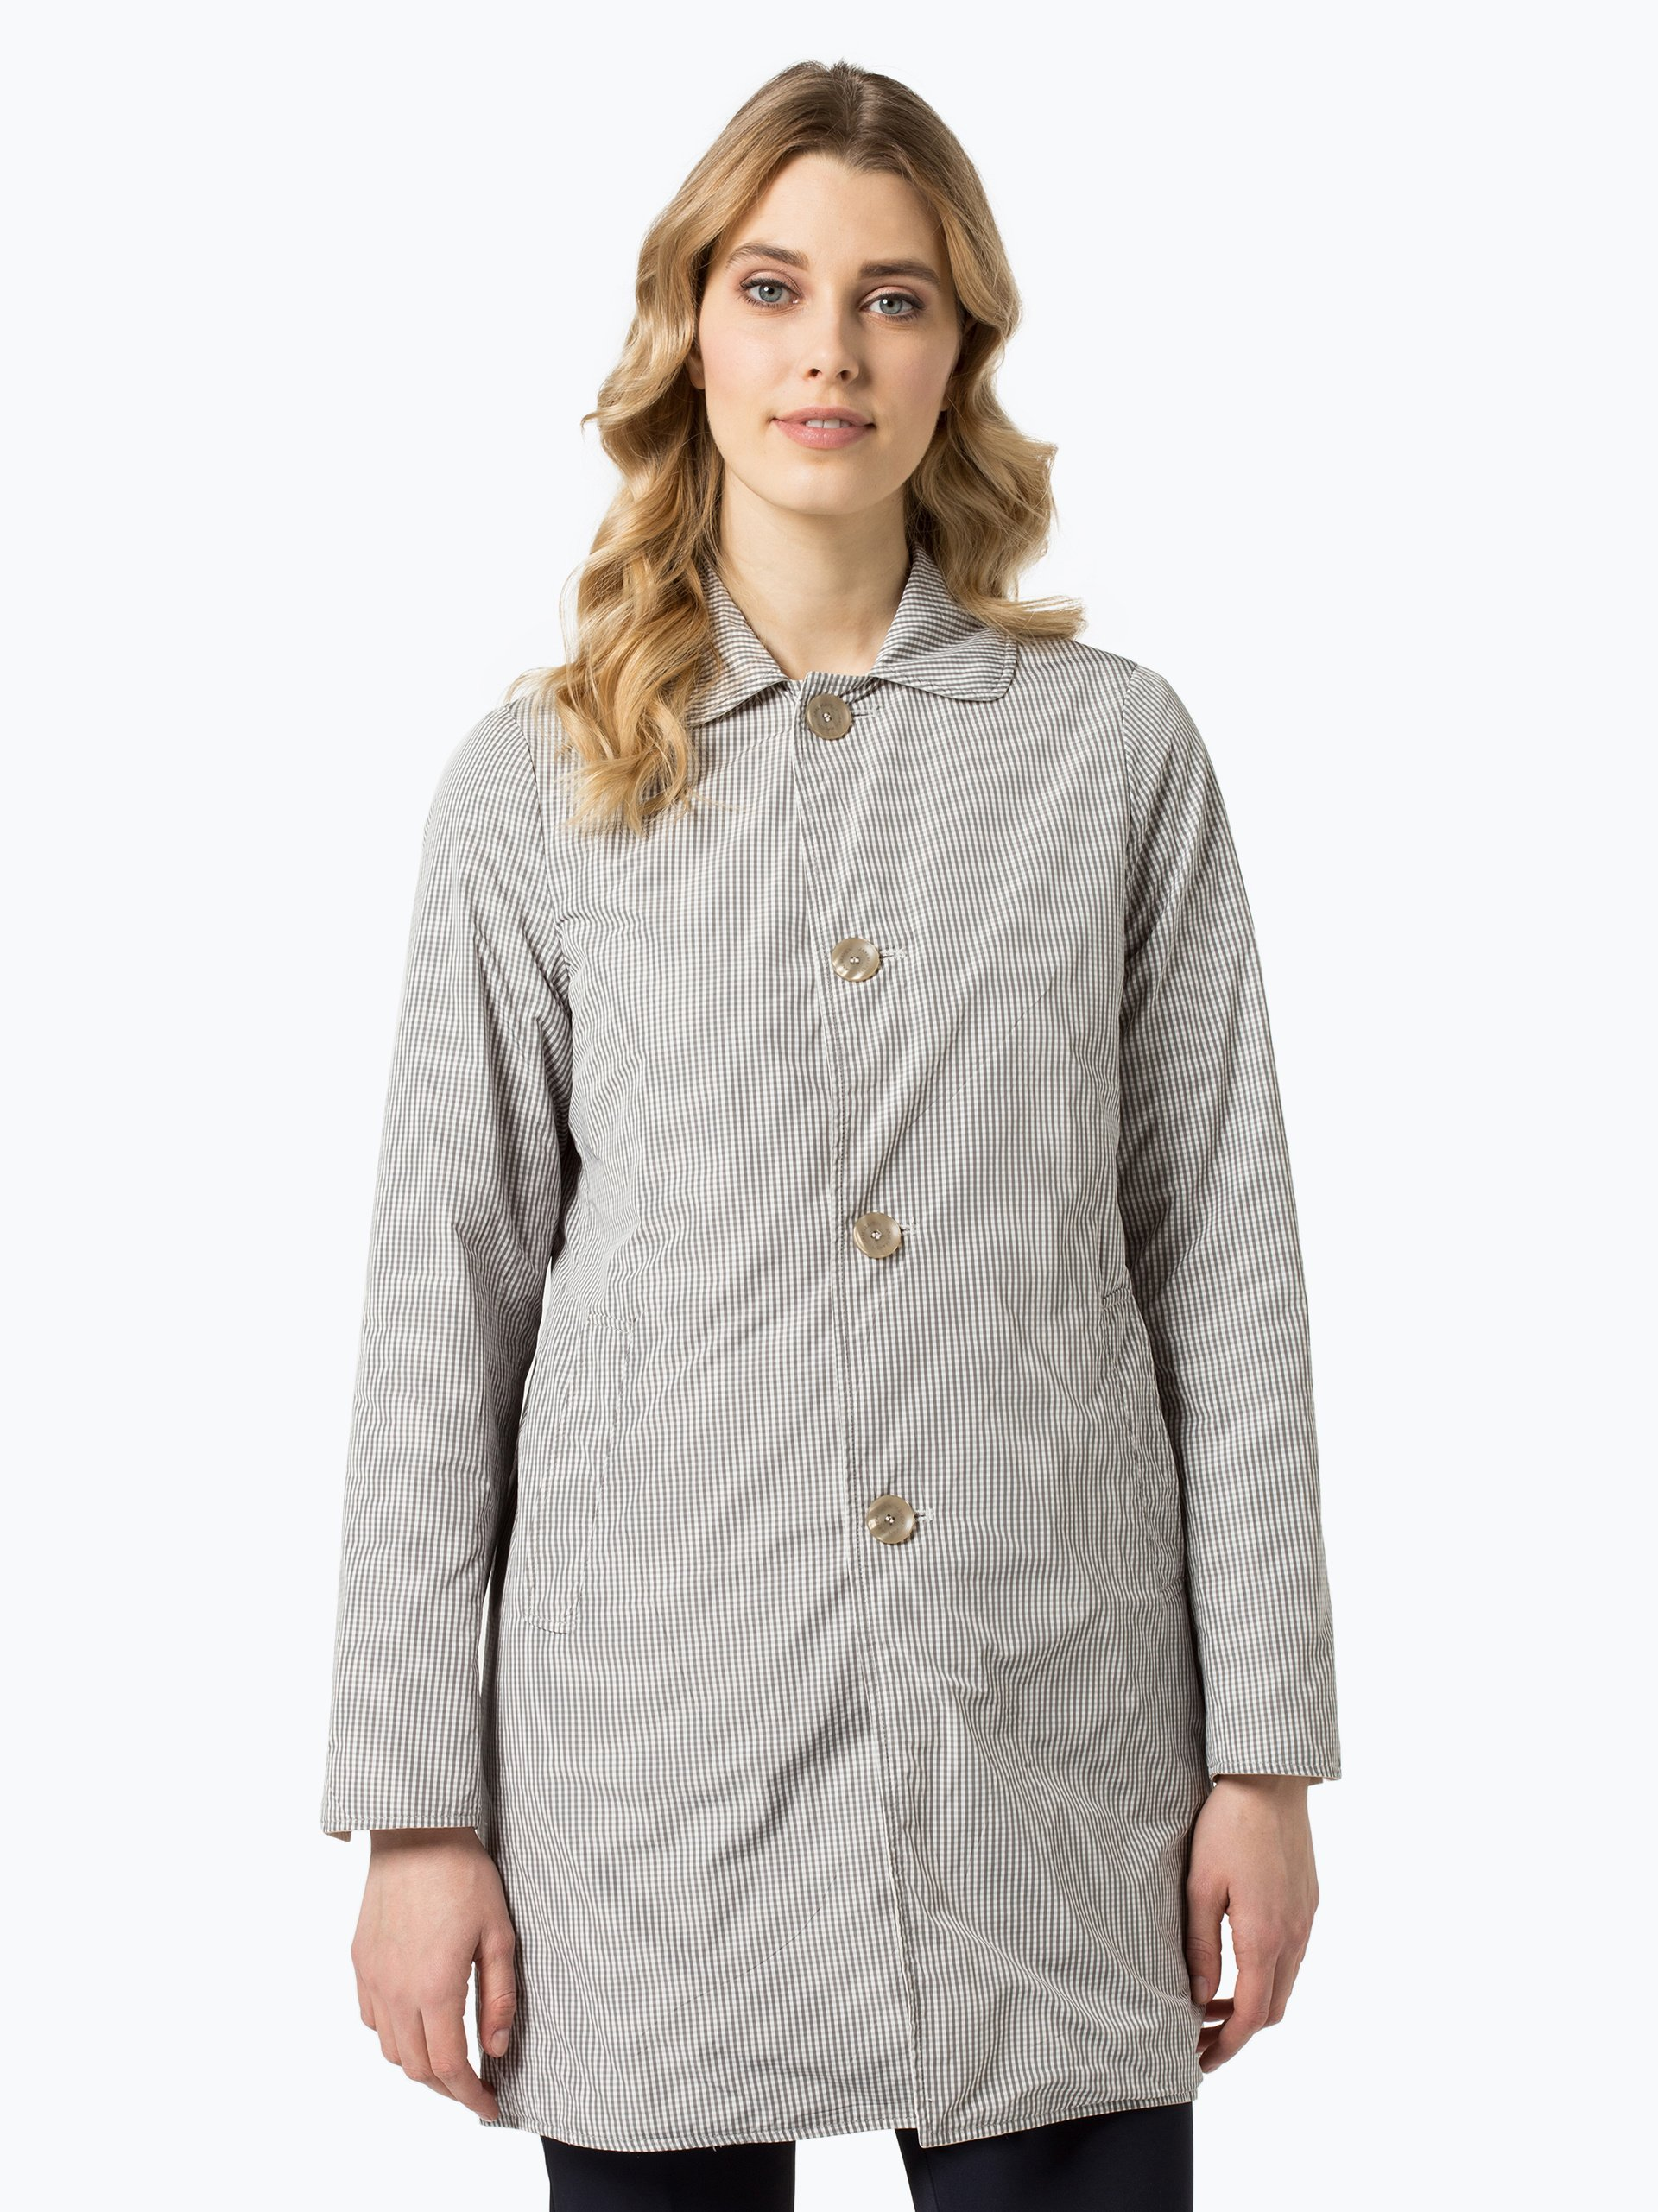 Jan Mayen Damen Wendemantel - Layette